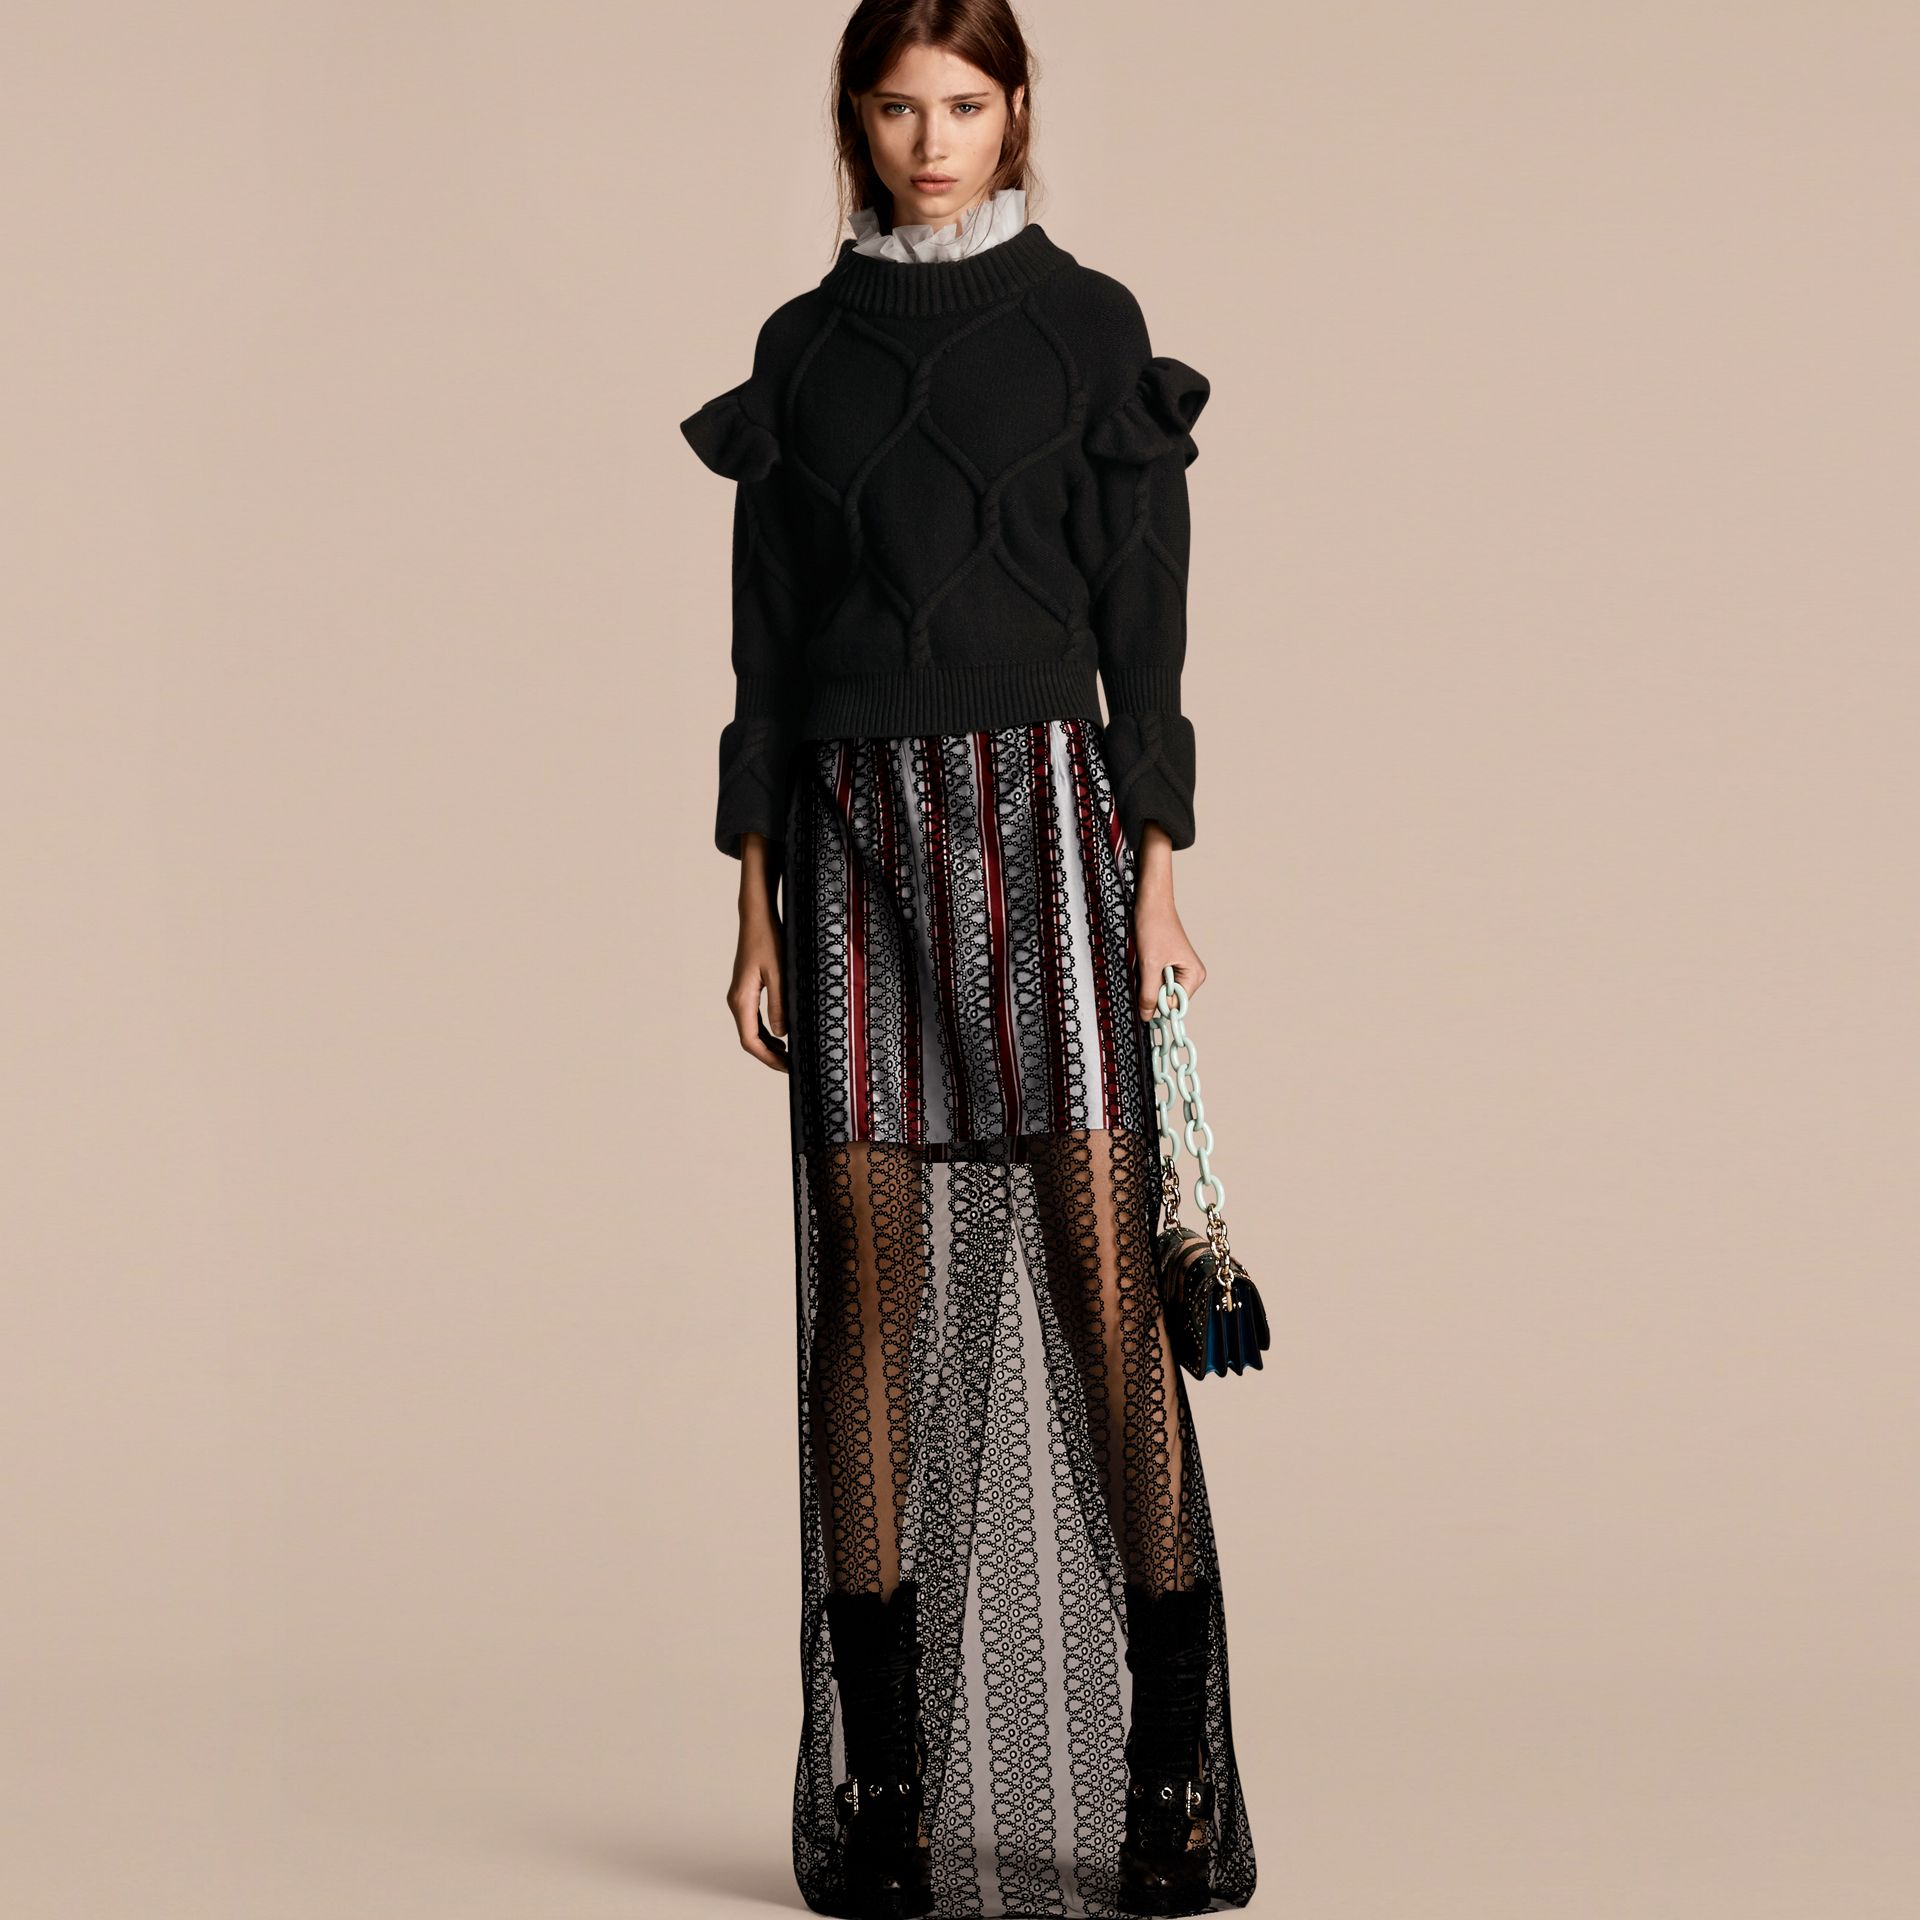 Black Cable Knit Wool Cashmere Sweater with Ruffle Bell Sleeves Black - gallery image 1